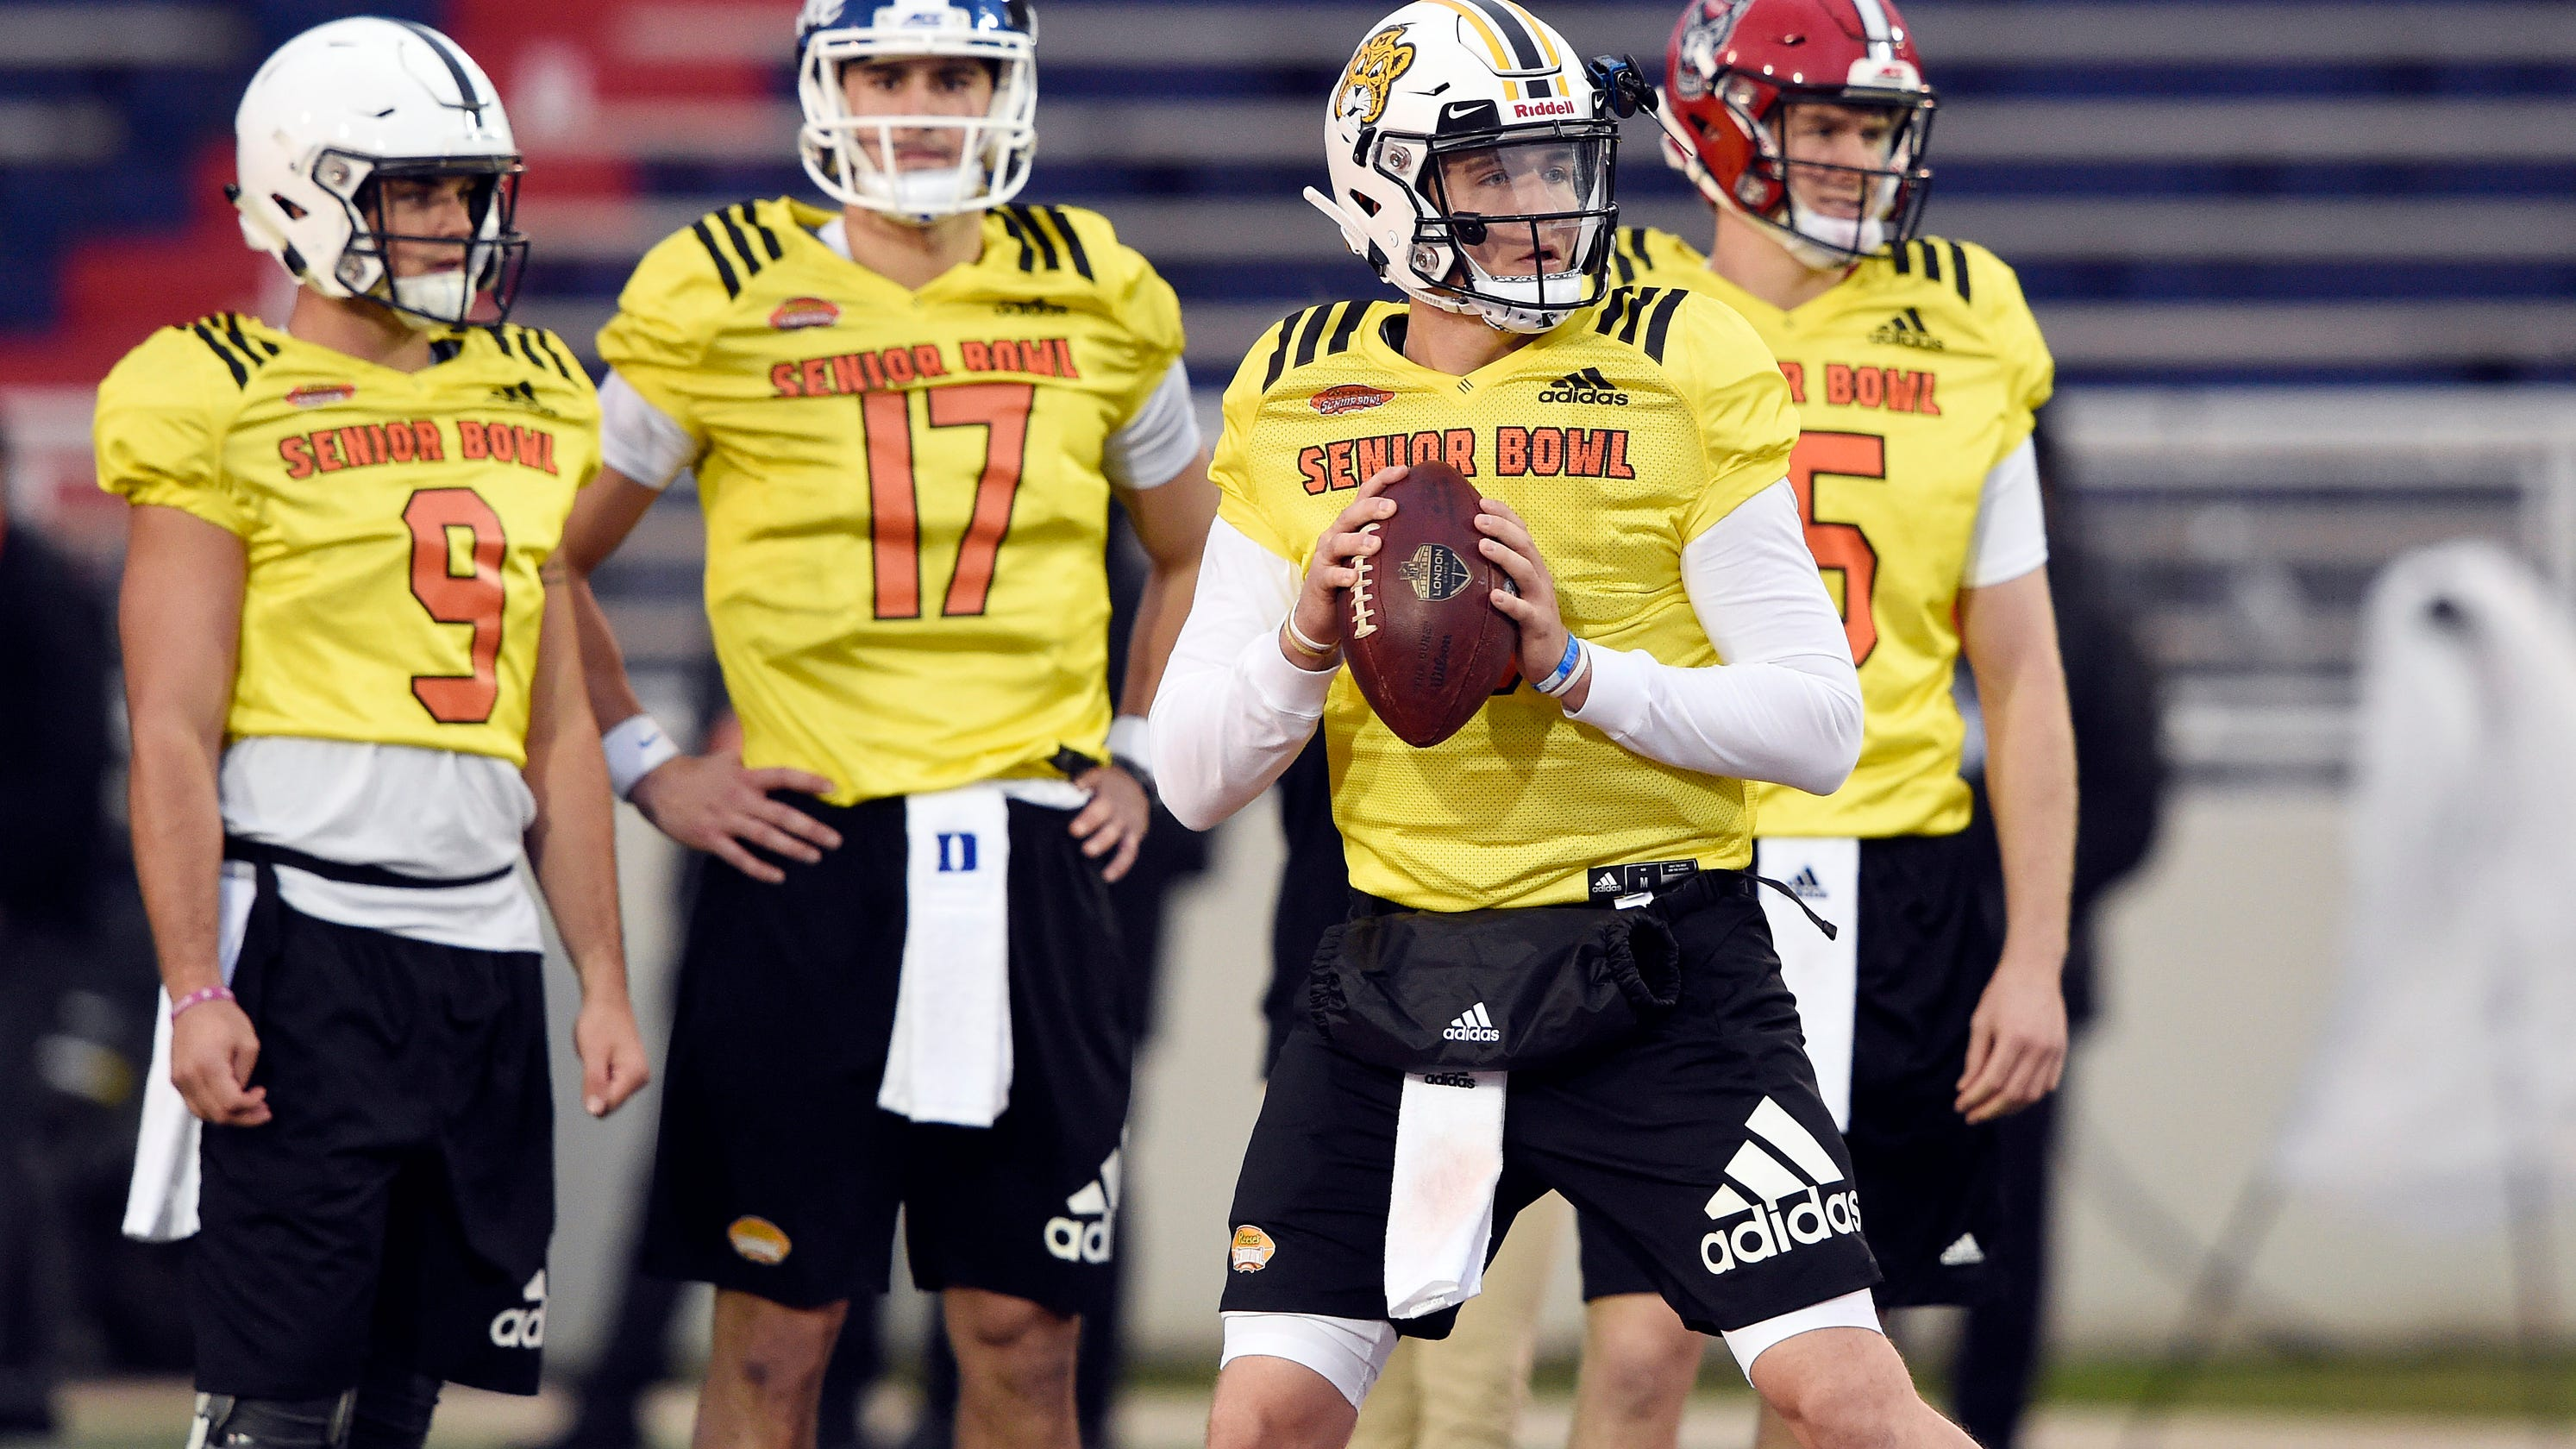 Senior Bowl  Five things we learned from NFL draft prospects in practice f18292c3f